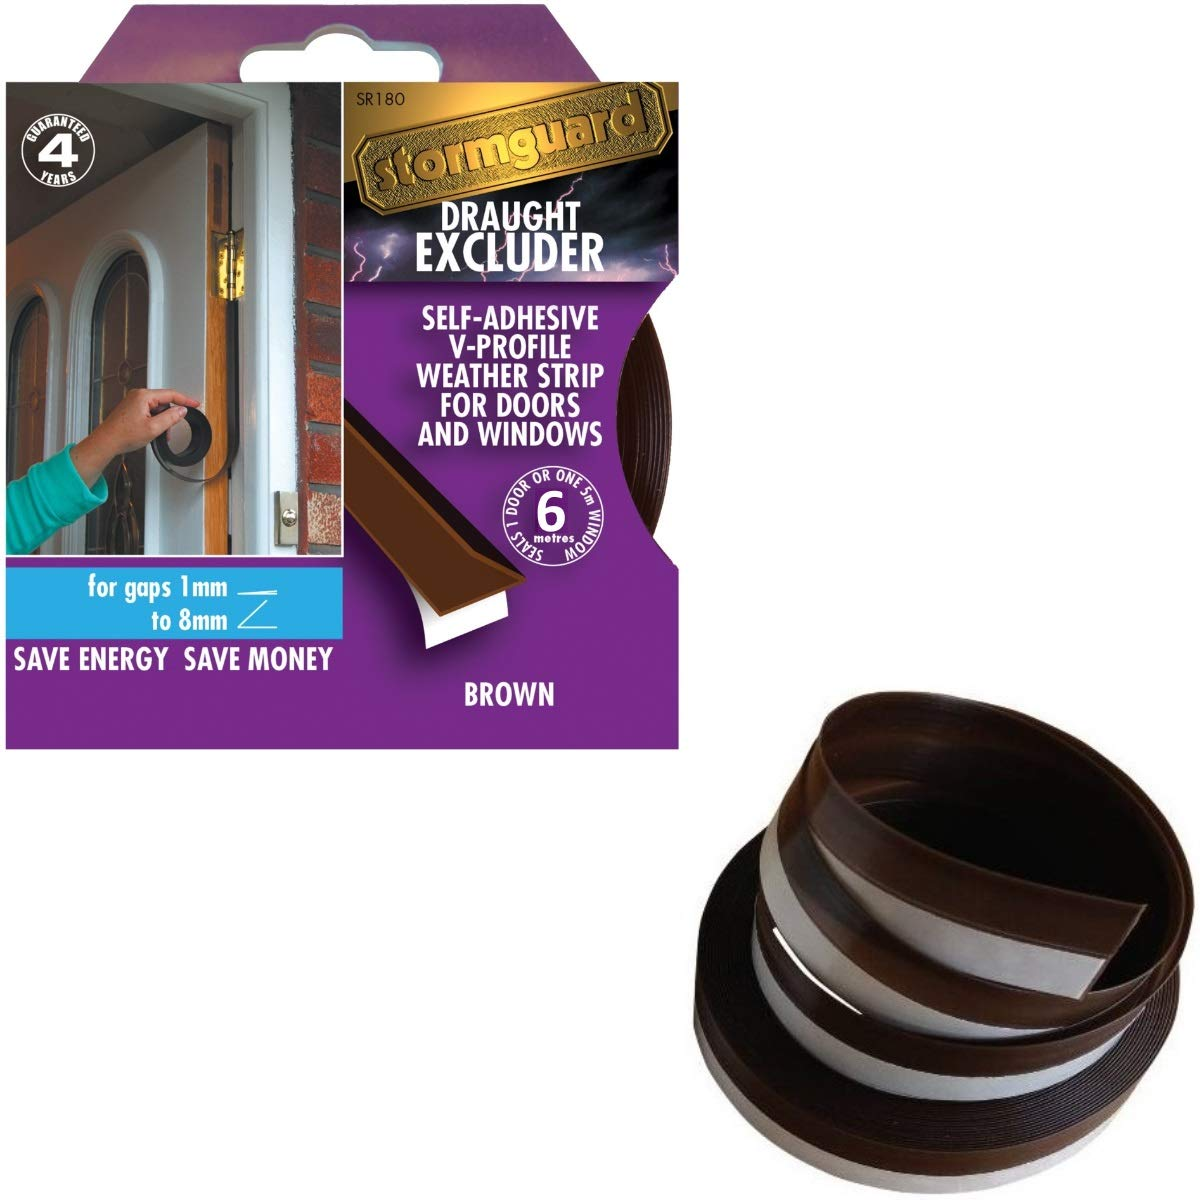 Stormguard 05SR180005MB 5m Self-Adeshive ' V ' Seal Tape Draught Excluder - Brown